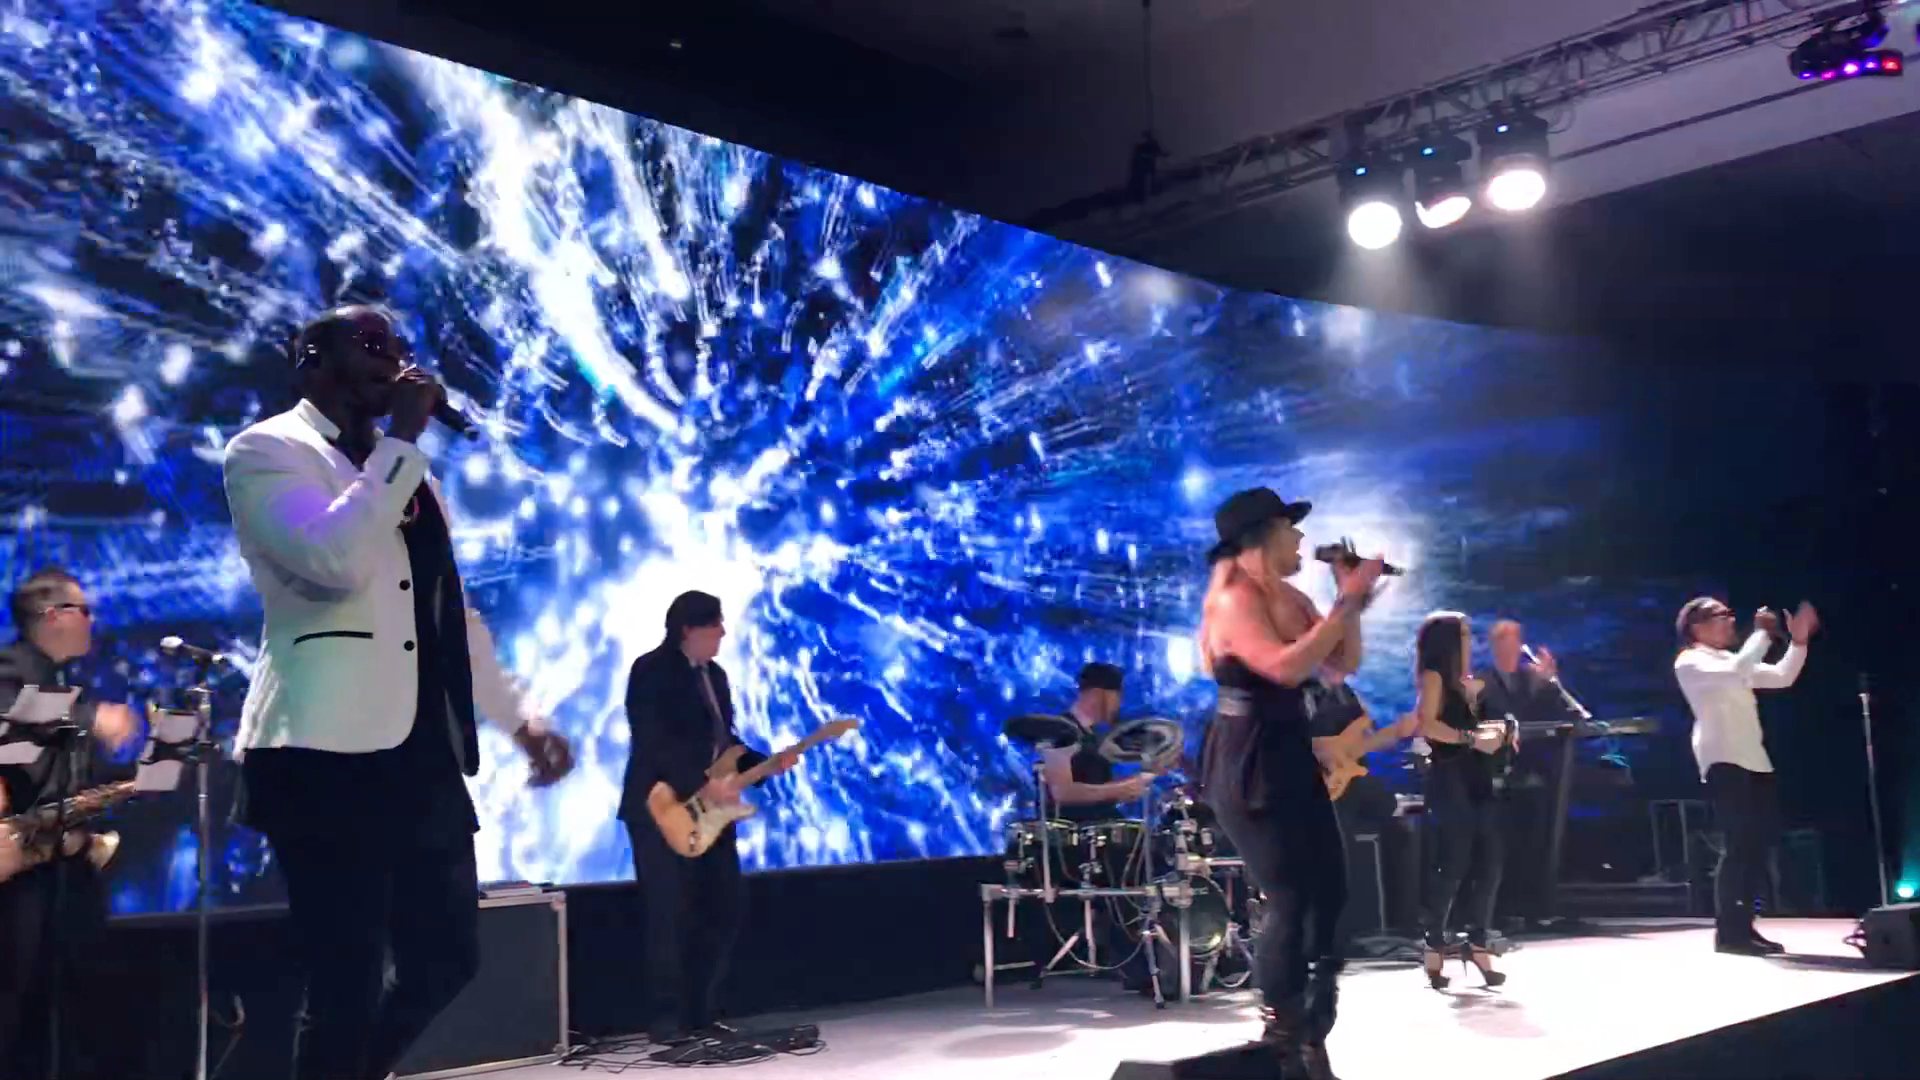 Corporate event band & entertainment